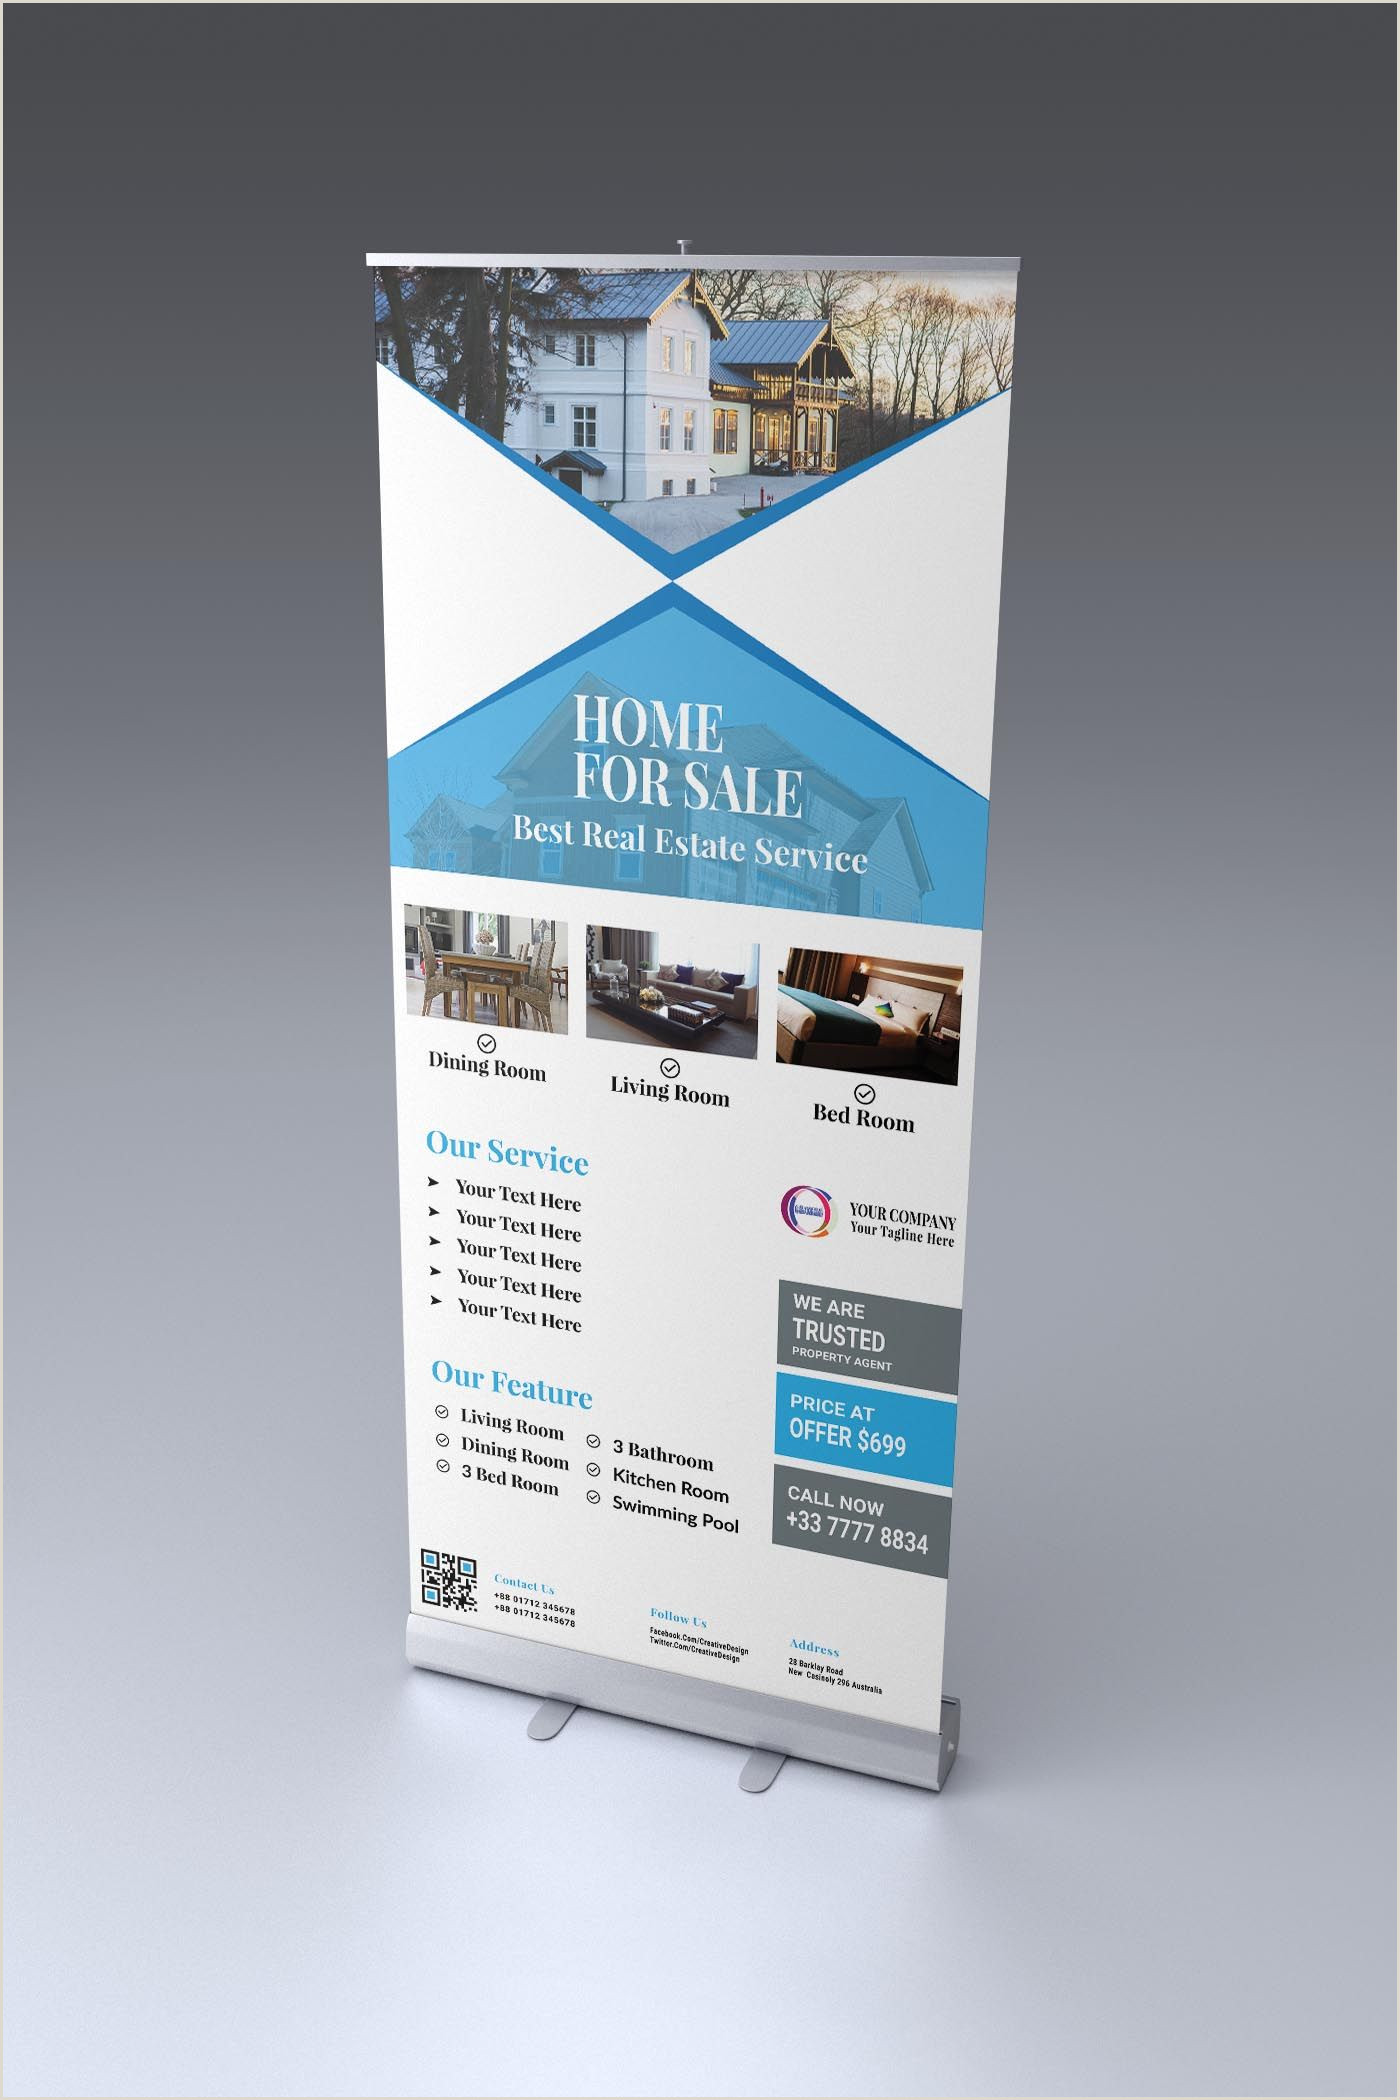 Roll Up Design Looking For A Roll Up Banner Design The Image